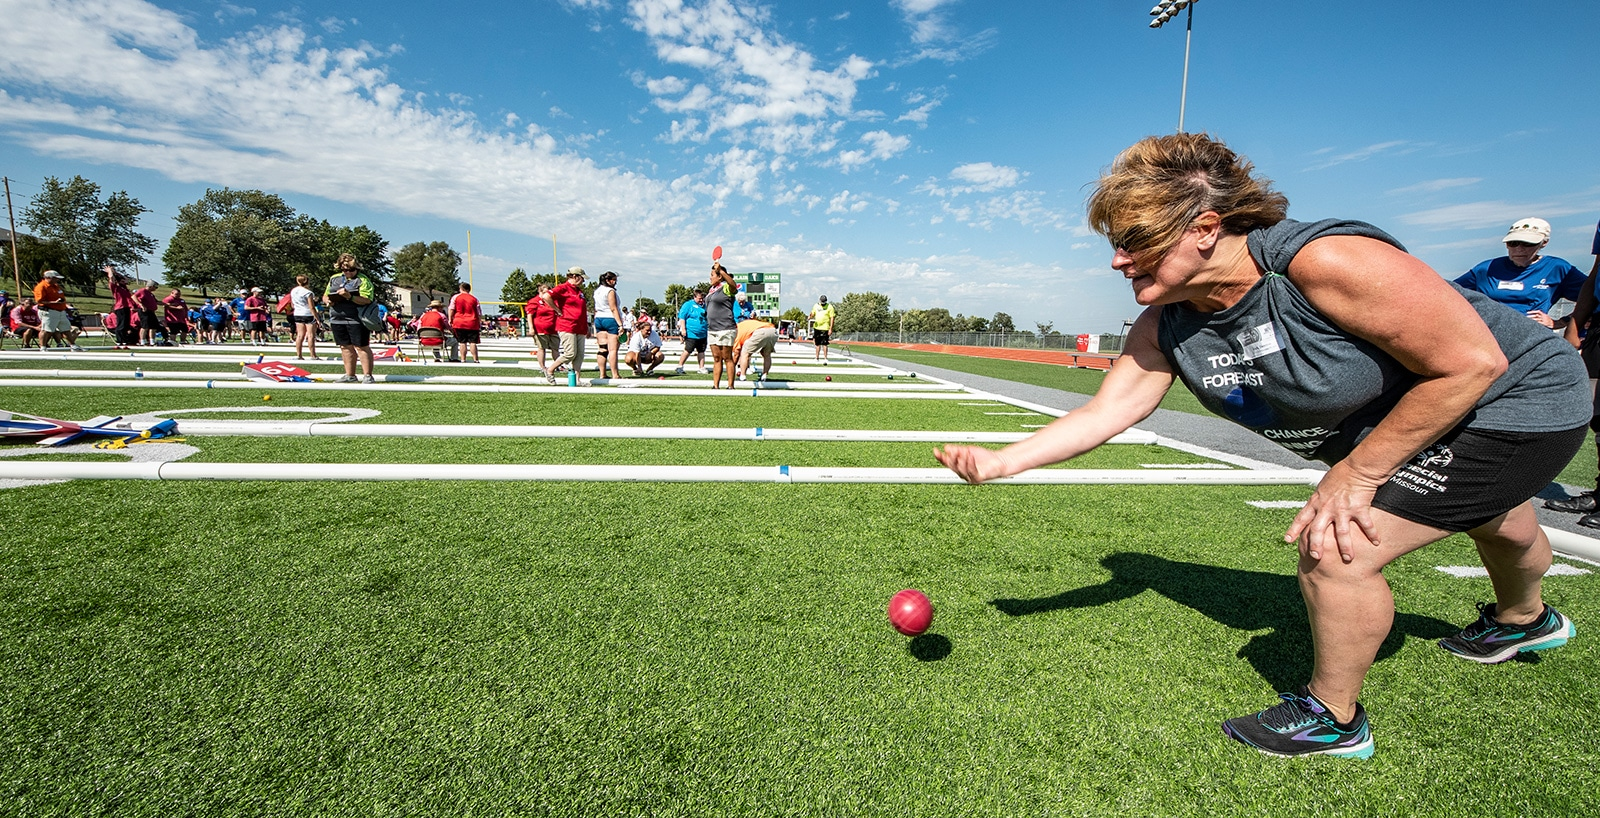 An athlete releases a bocce ball to roll down a turf field with many other bocce courts in the background